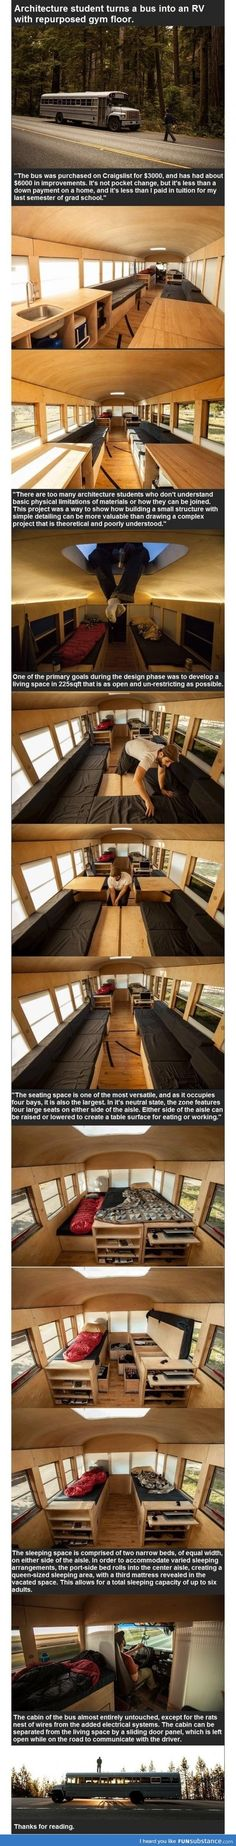 Architecture student turns a bus into an RV with re-purposed gym floor. FunSubstance.com